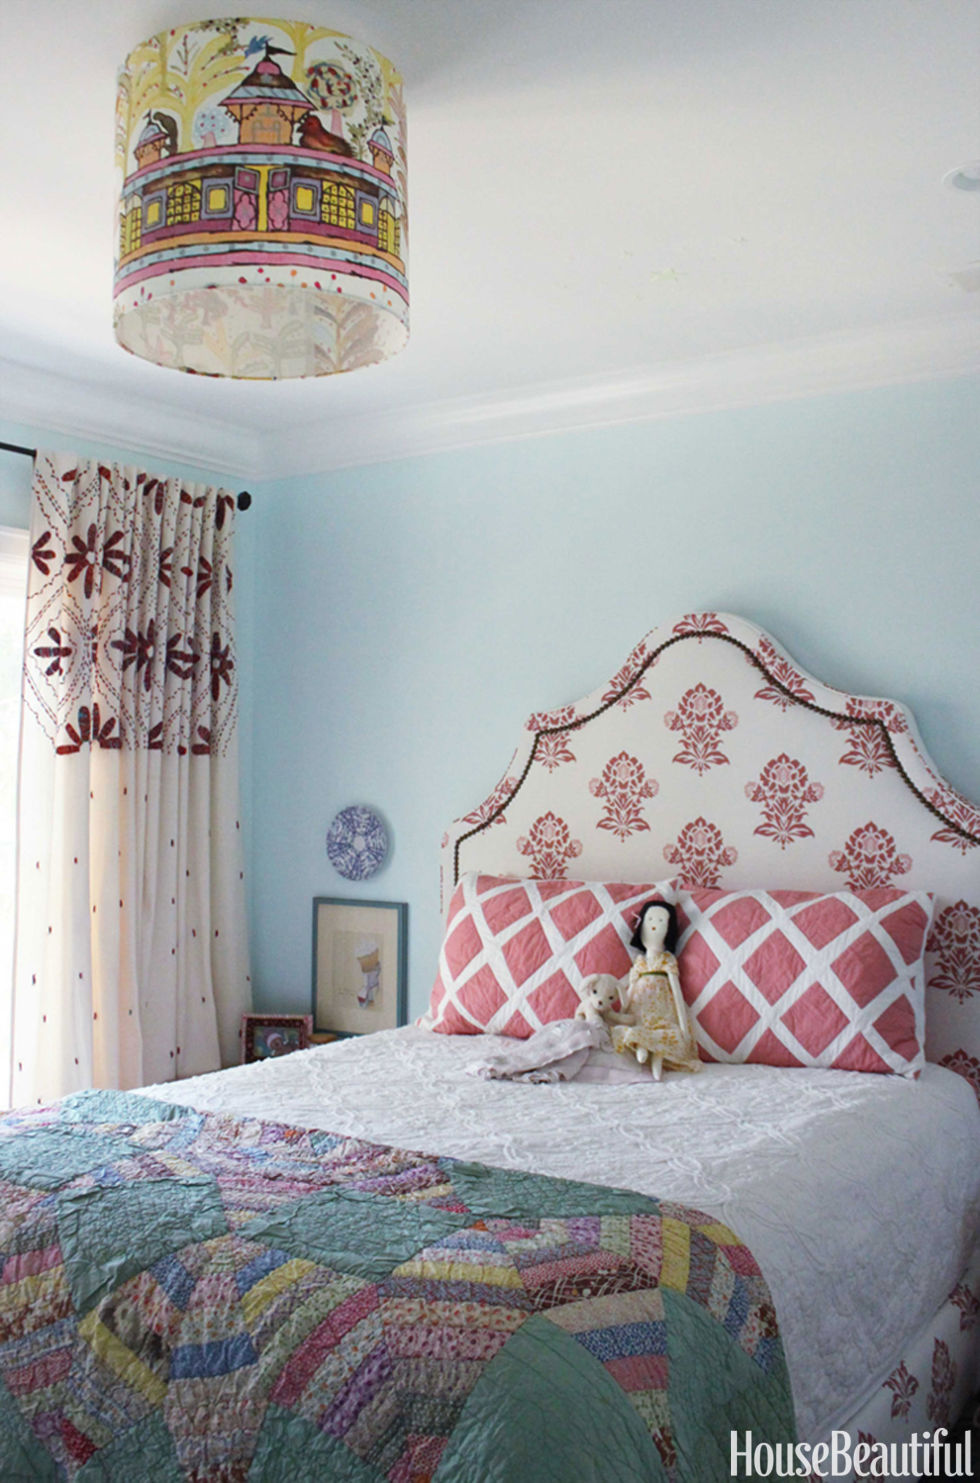 Bedroom colors for girls room - Bedroom Colors For Girls Room 59